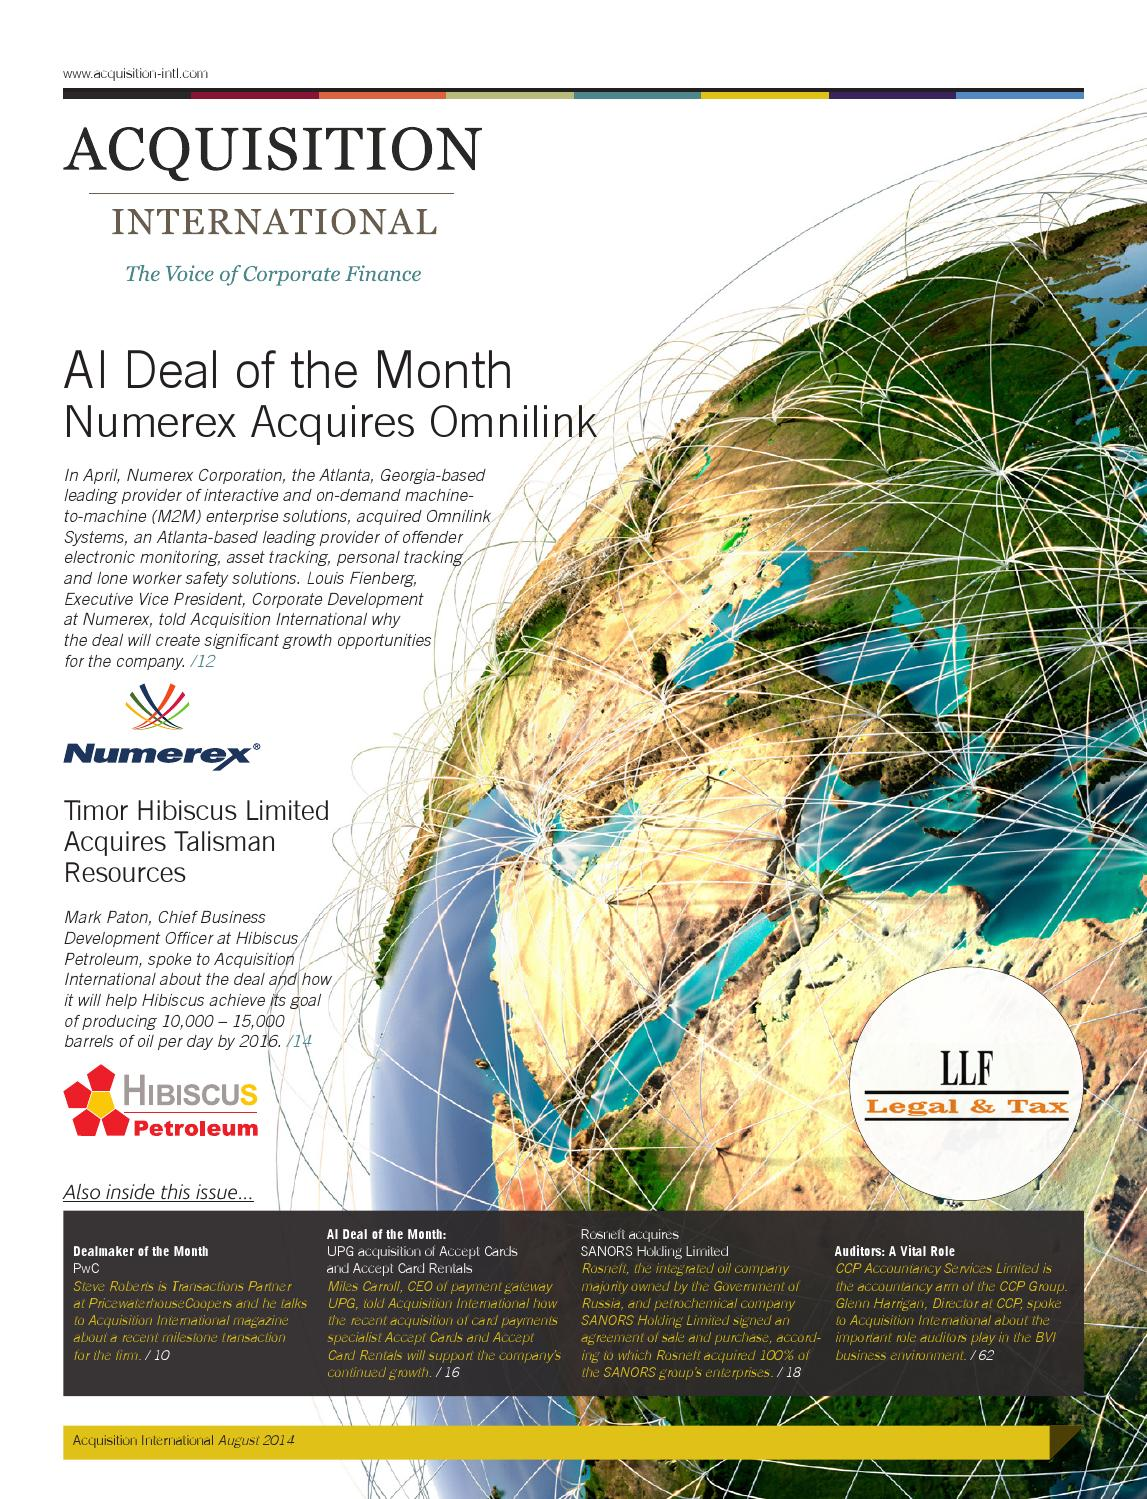 2a03e1687f Acquisition International August 2014 by AI Global Media - issuu